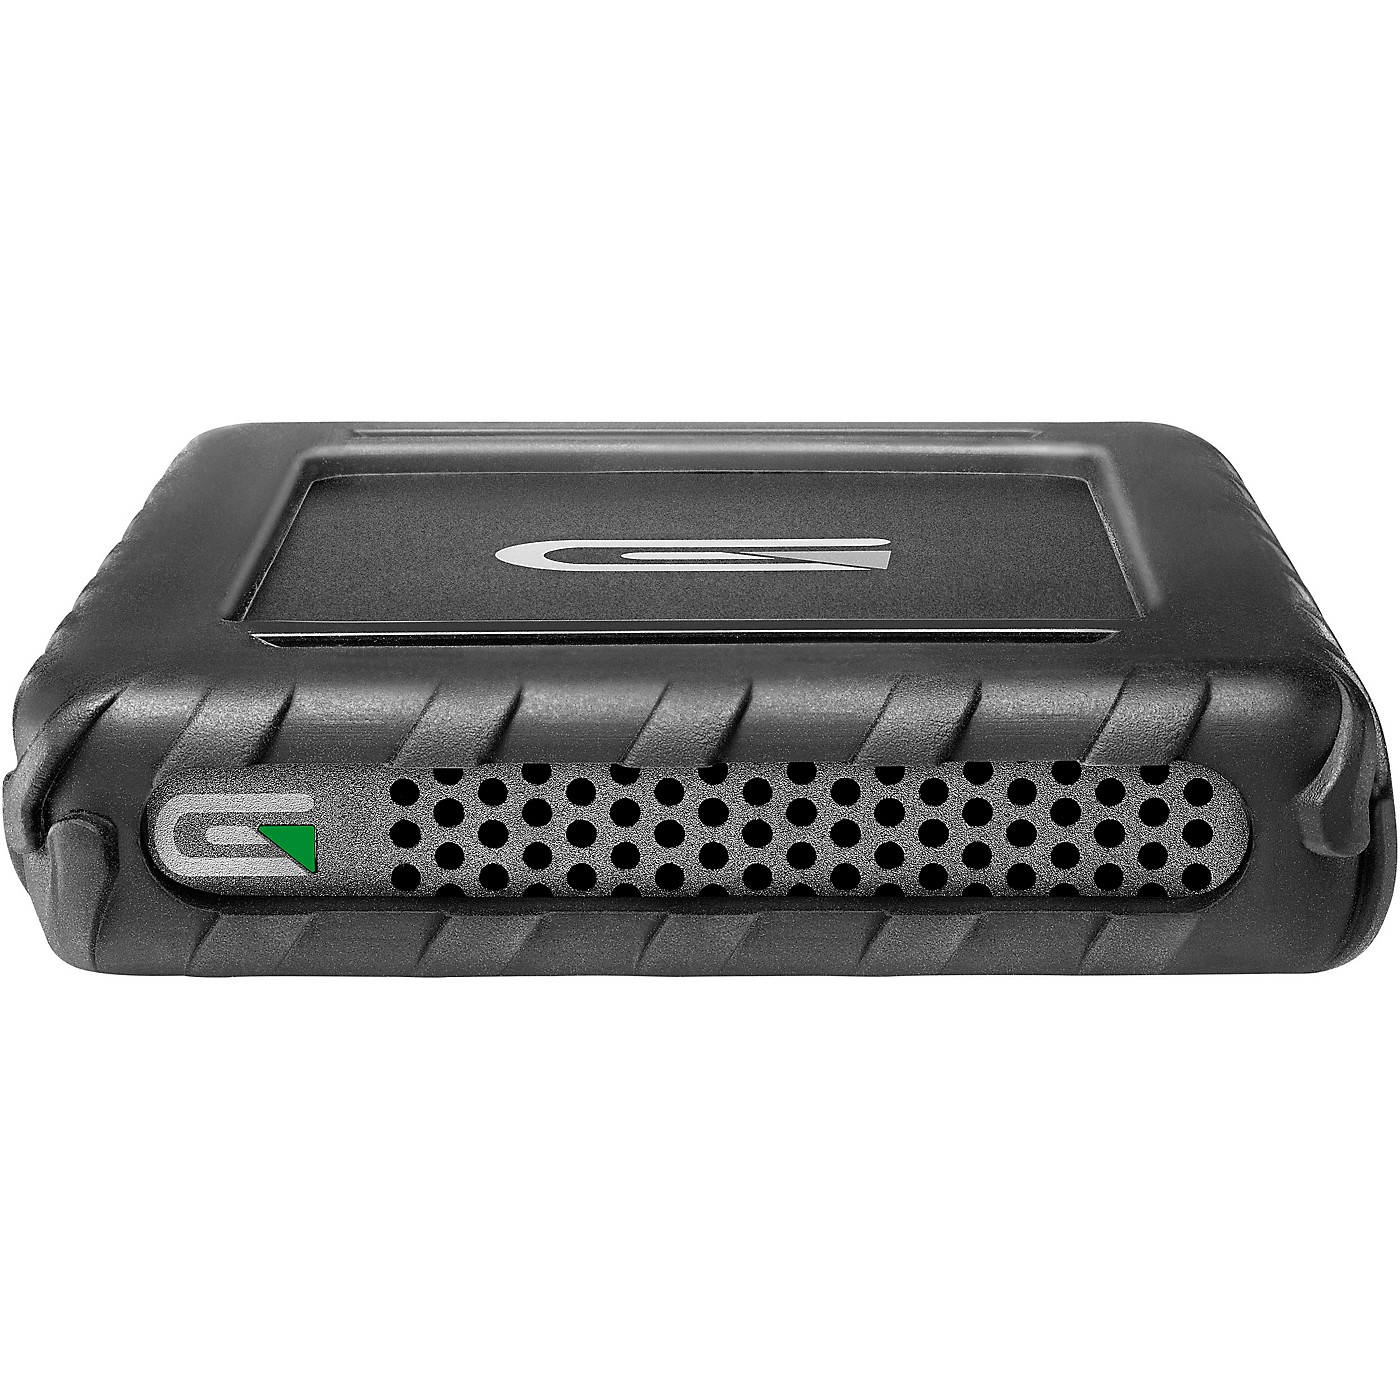 Glyph Blackbox Plus USB External Mobile Hard Drive thumbnail